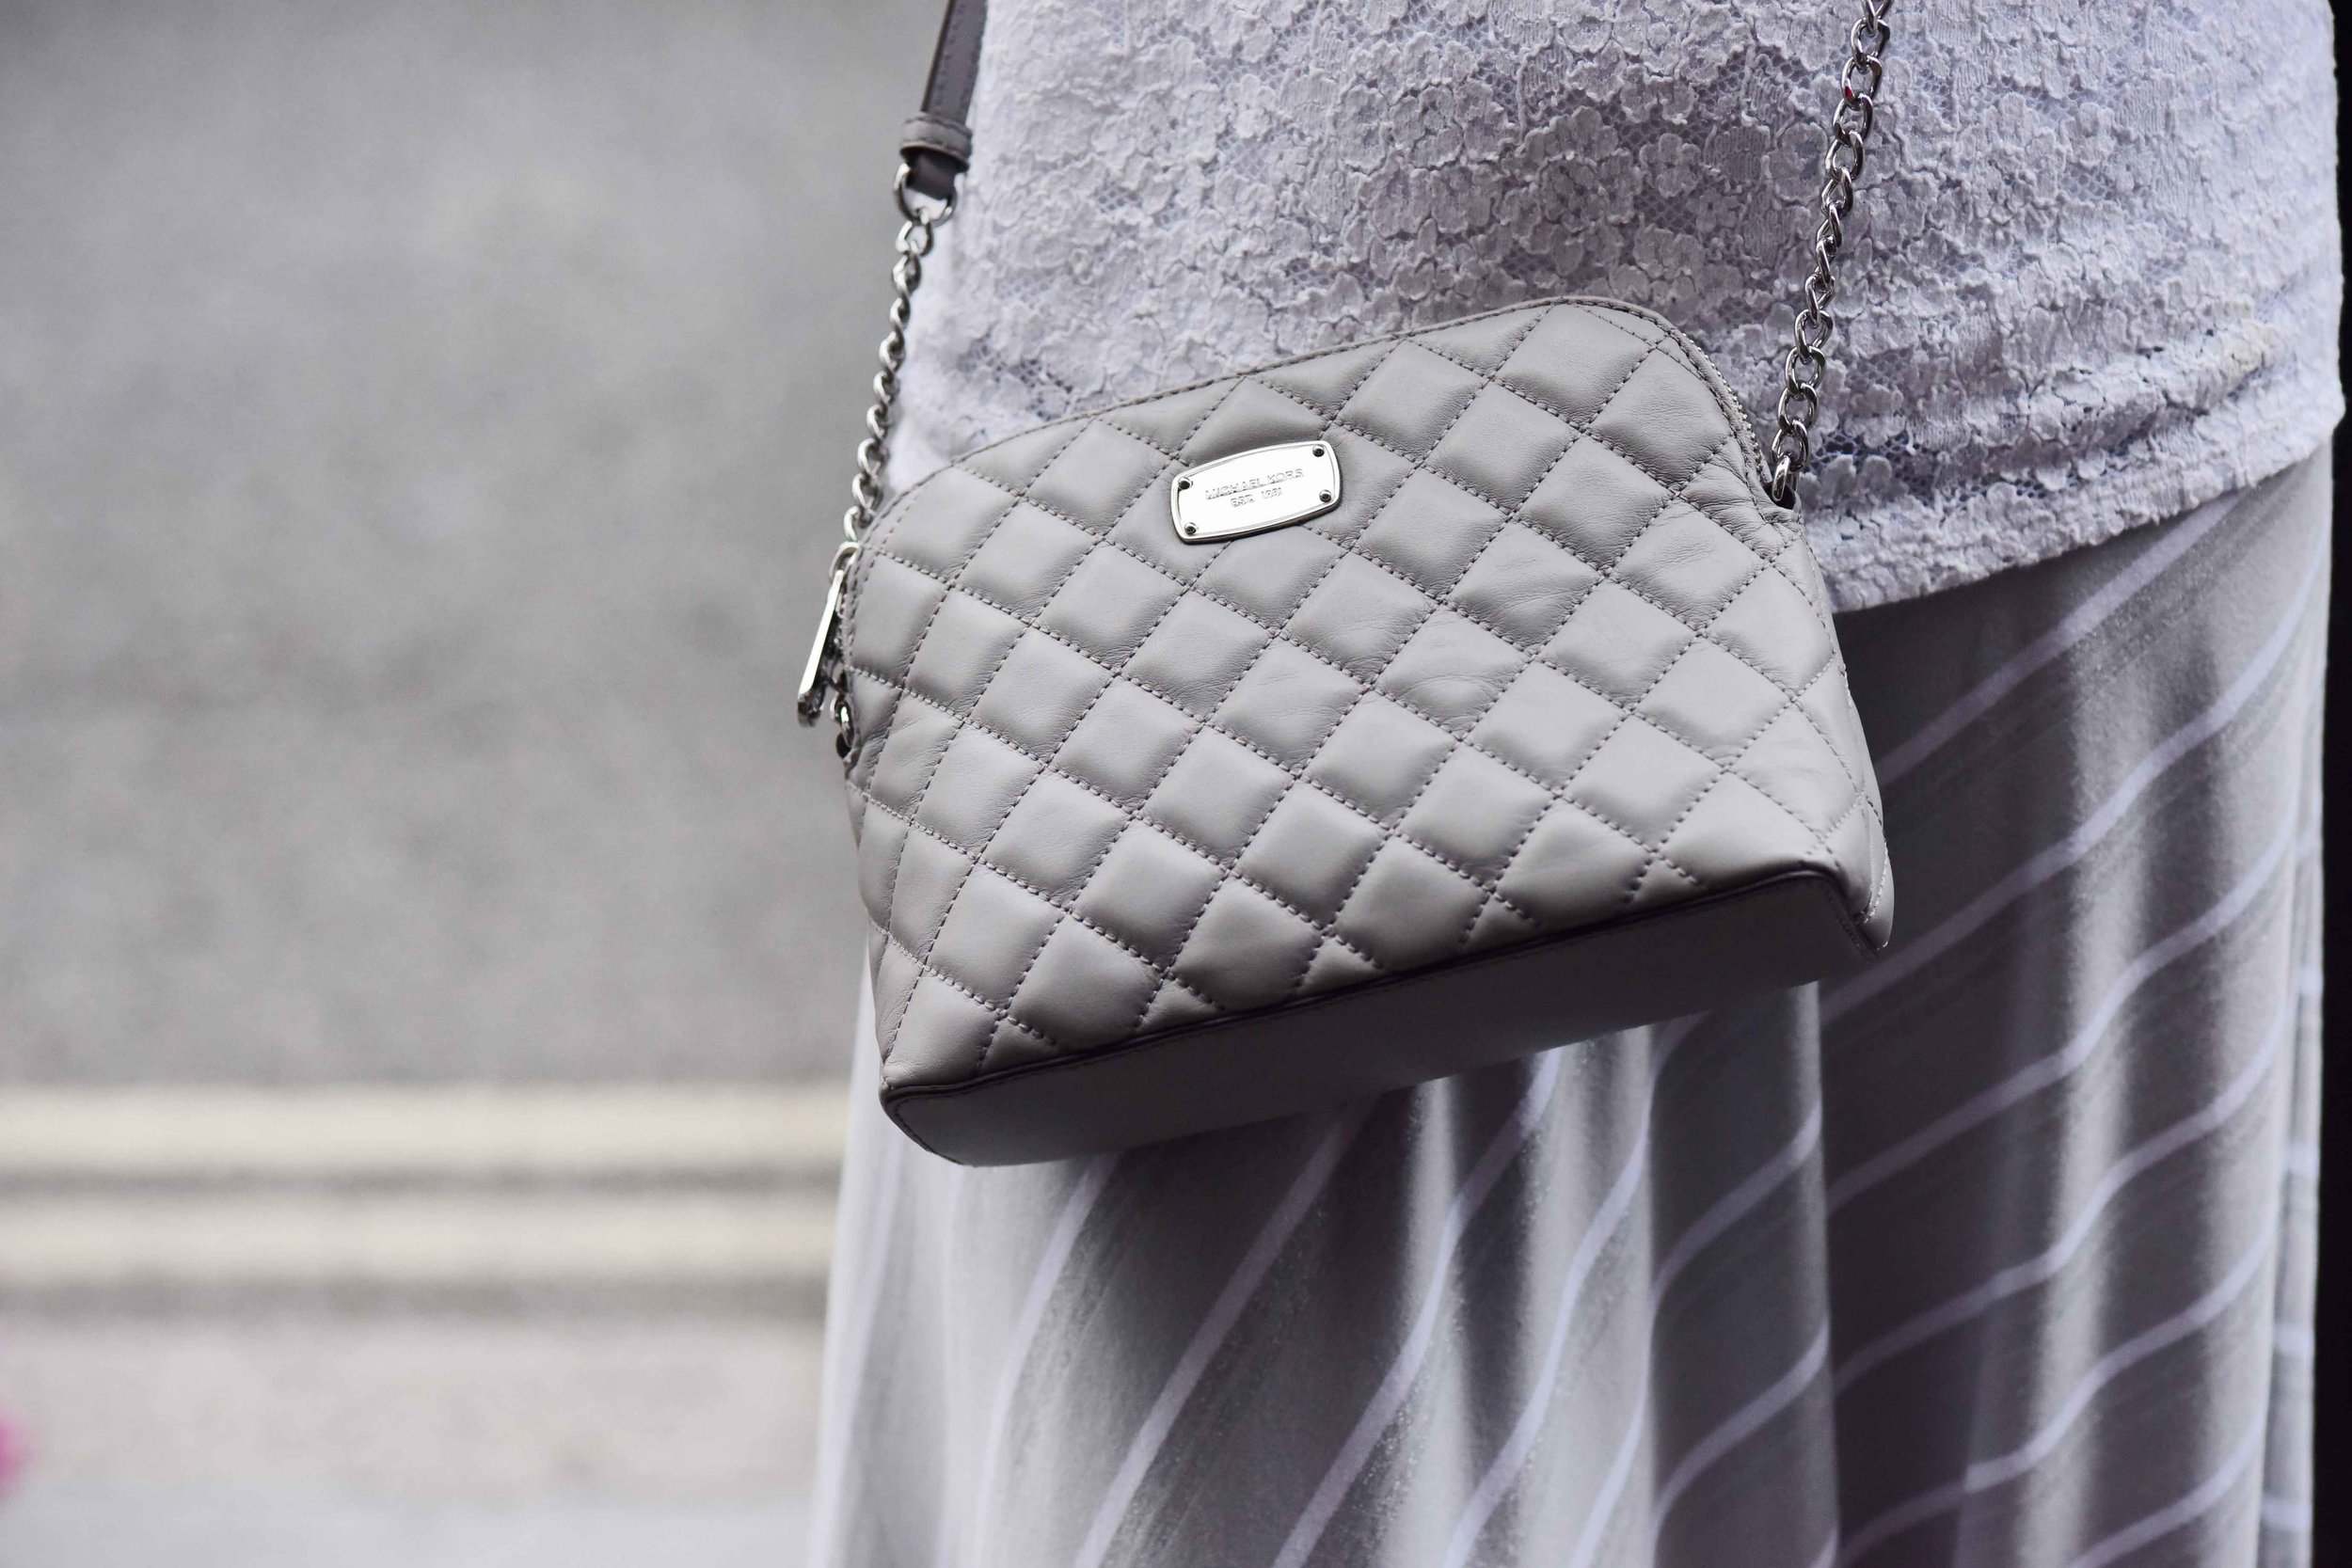 Summer street style, Michael Kors crossbody bag, Marks & Spencer white lace top, Chicos bias cut grey striped skirt. Image©sourcingstyle.com